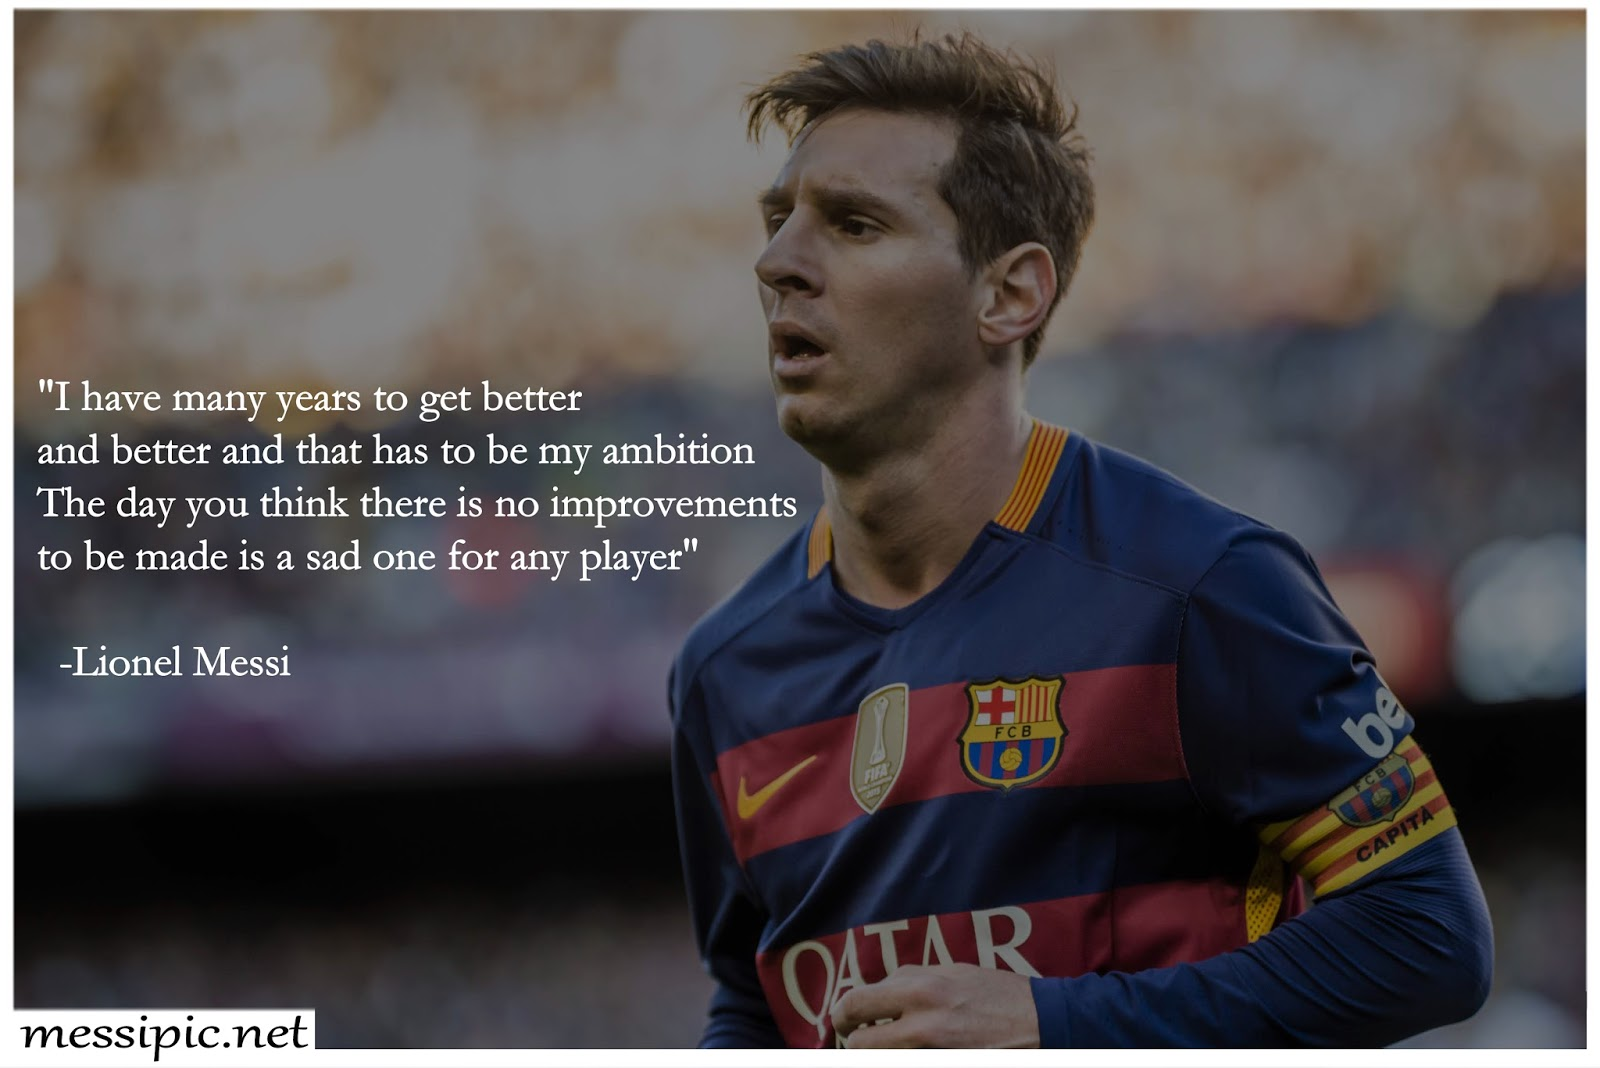 Lionel Messi Quotes On Pictures Part 3